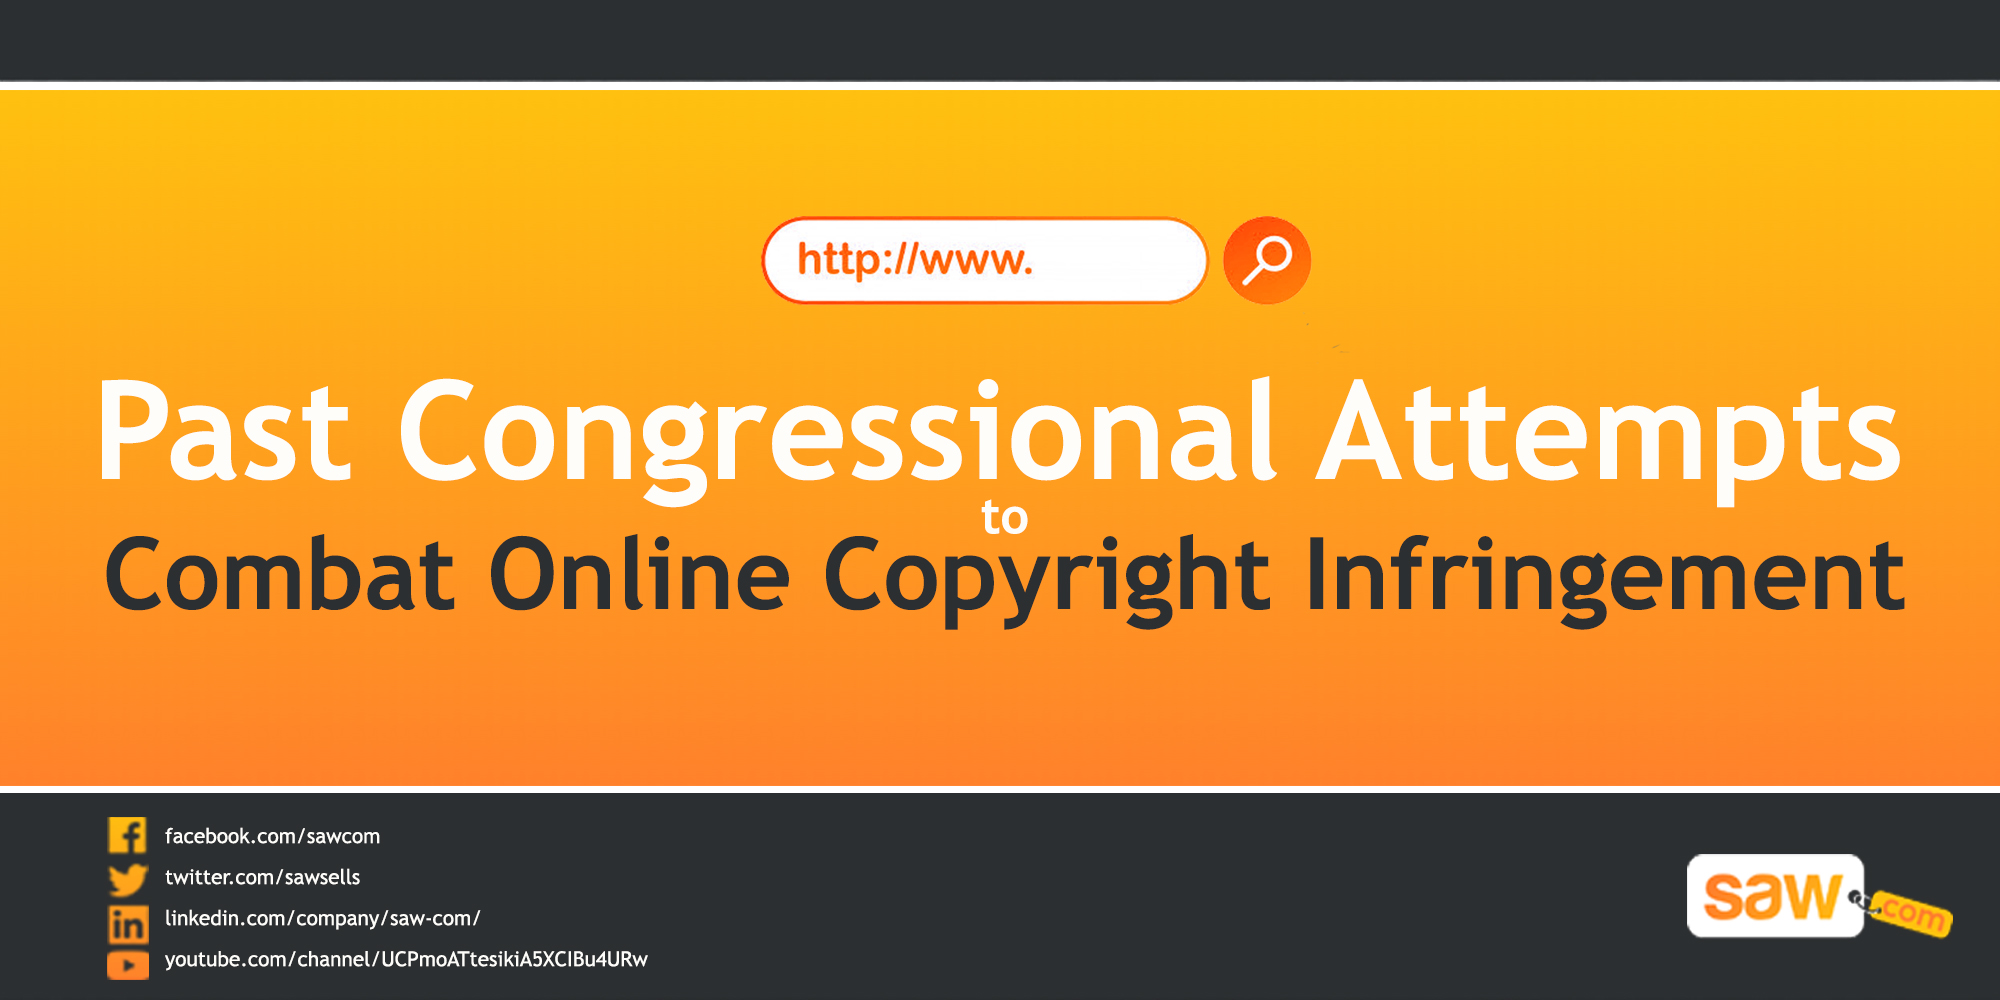 Past Congressional Attempts to Combat Online Copyright Infringement